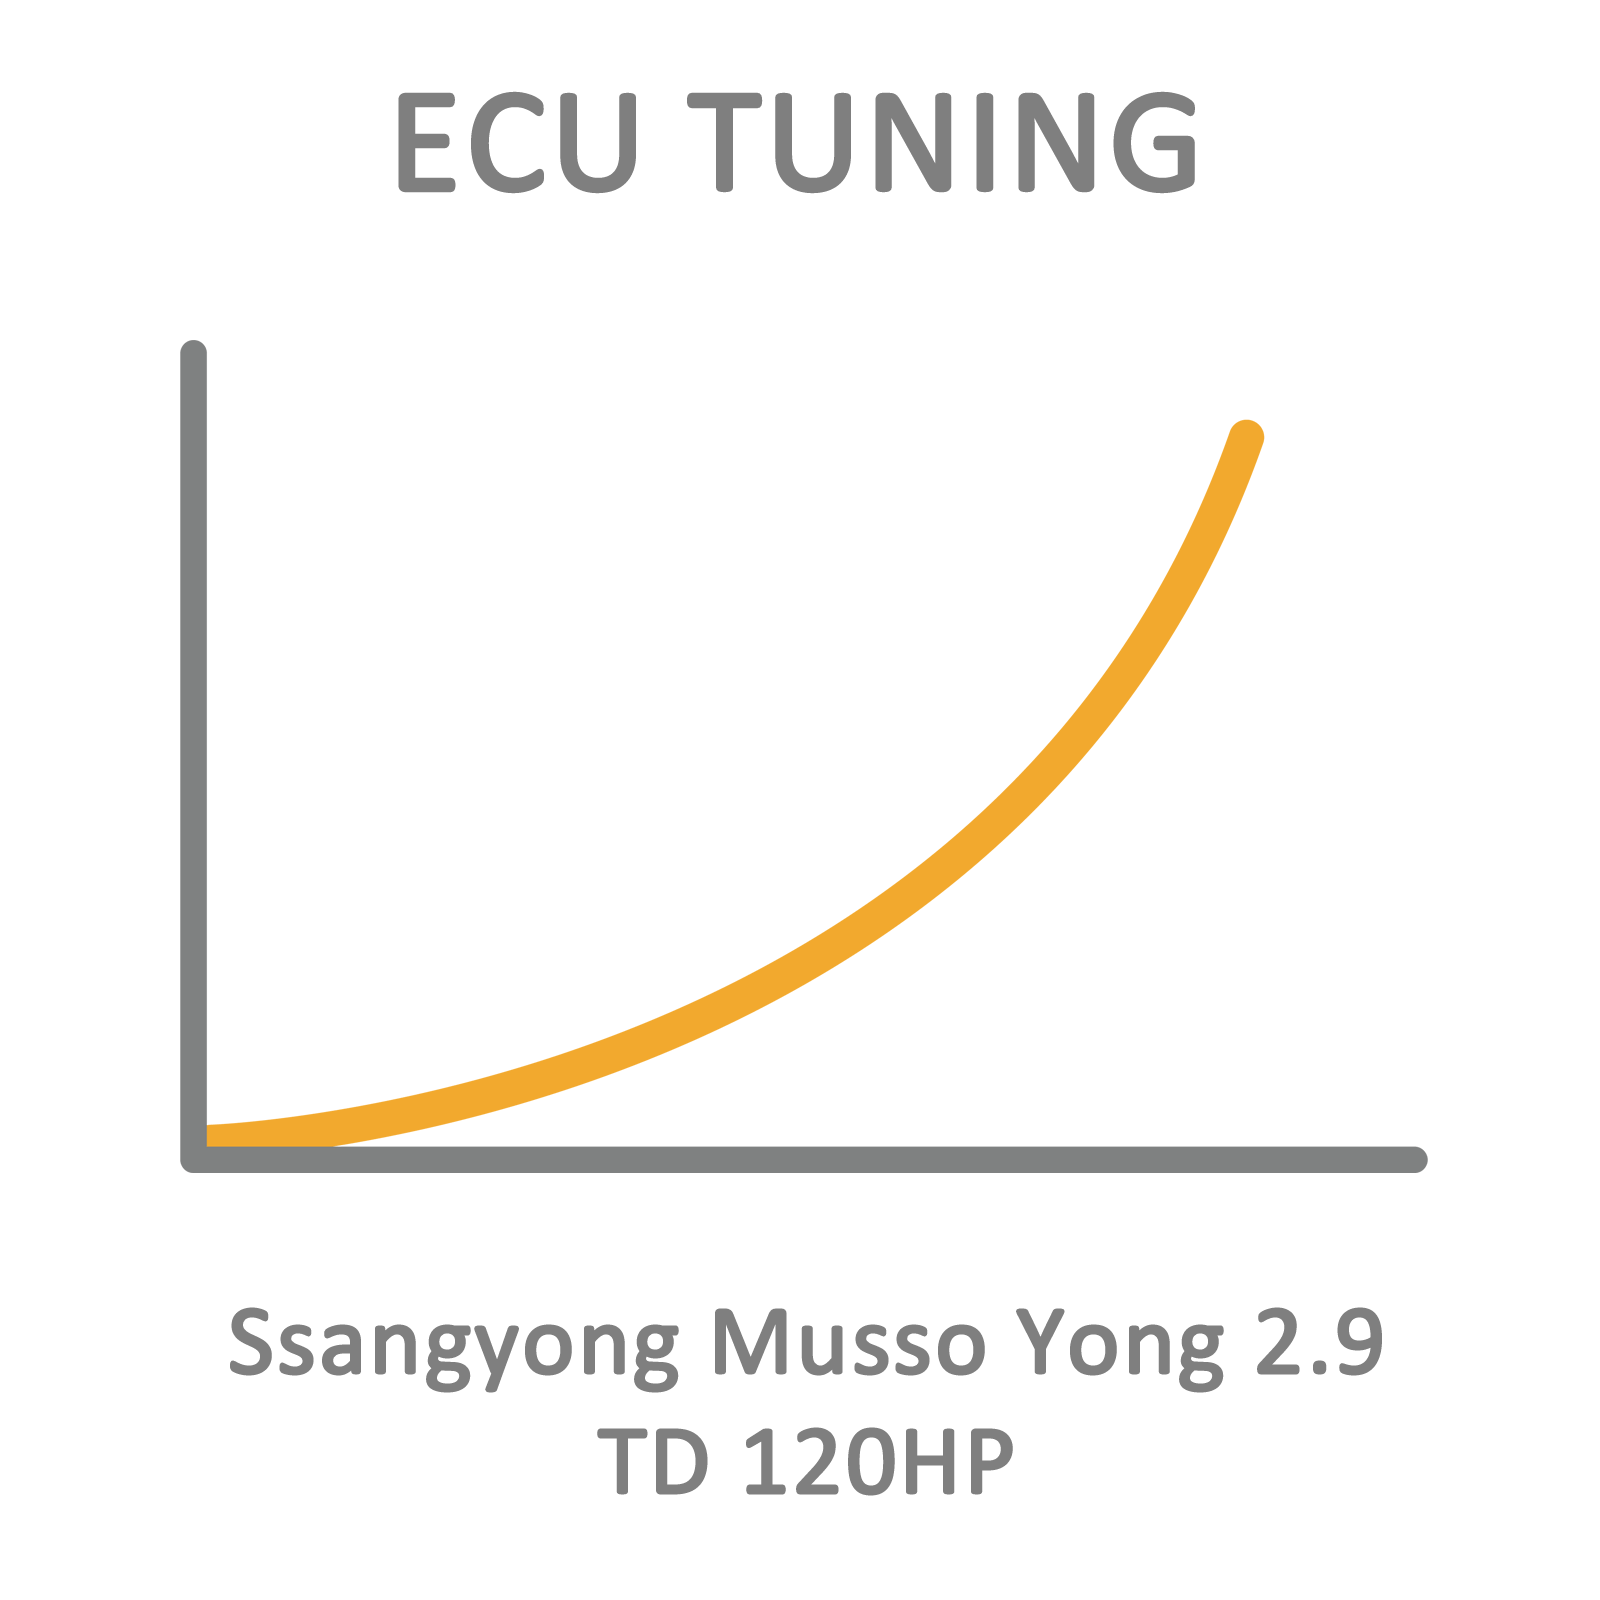 Ssangyong Musso Yong 2.9 TD 120HP ECU Tuning Remapping